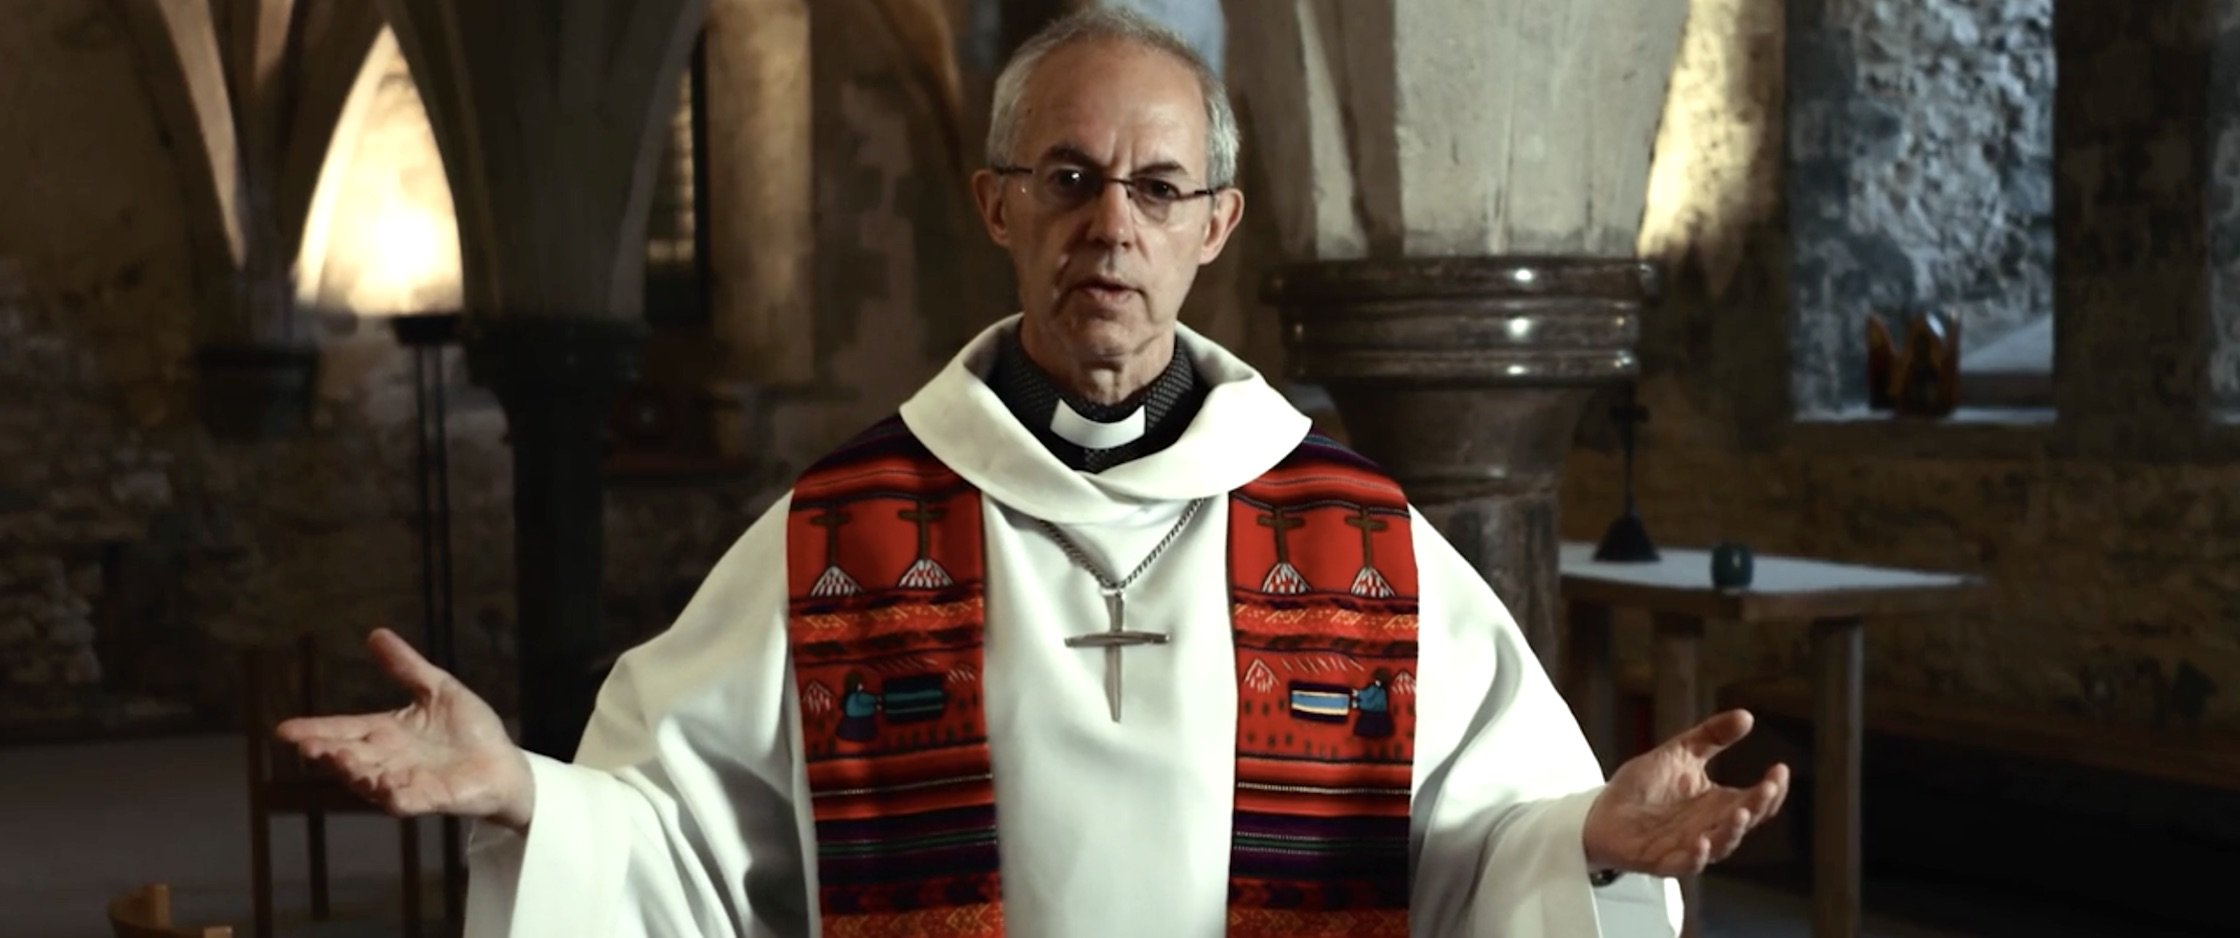 Archbishop Justin Welby concludes our prayer vigil